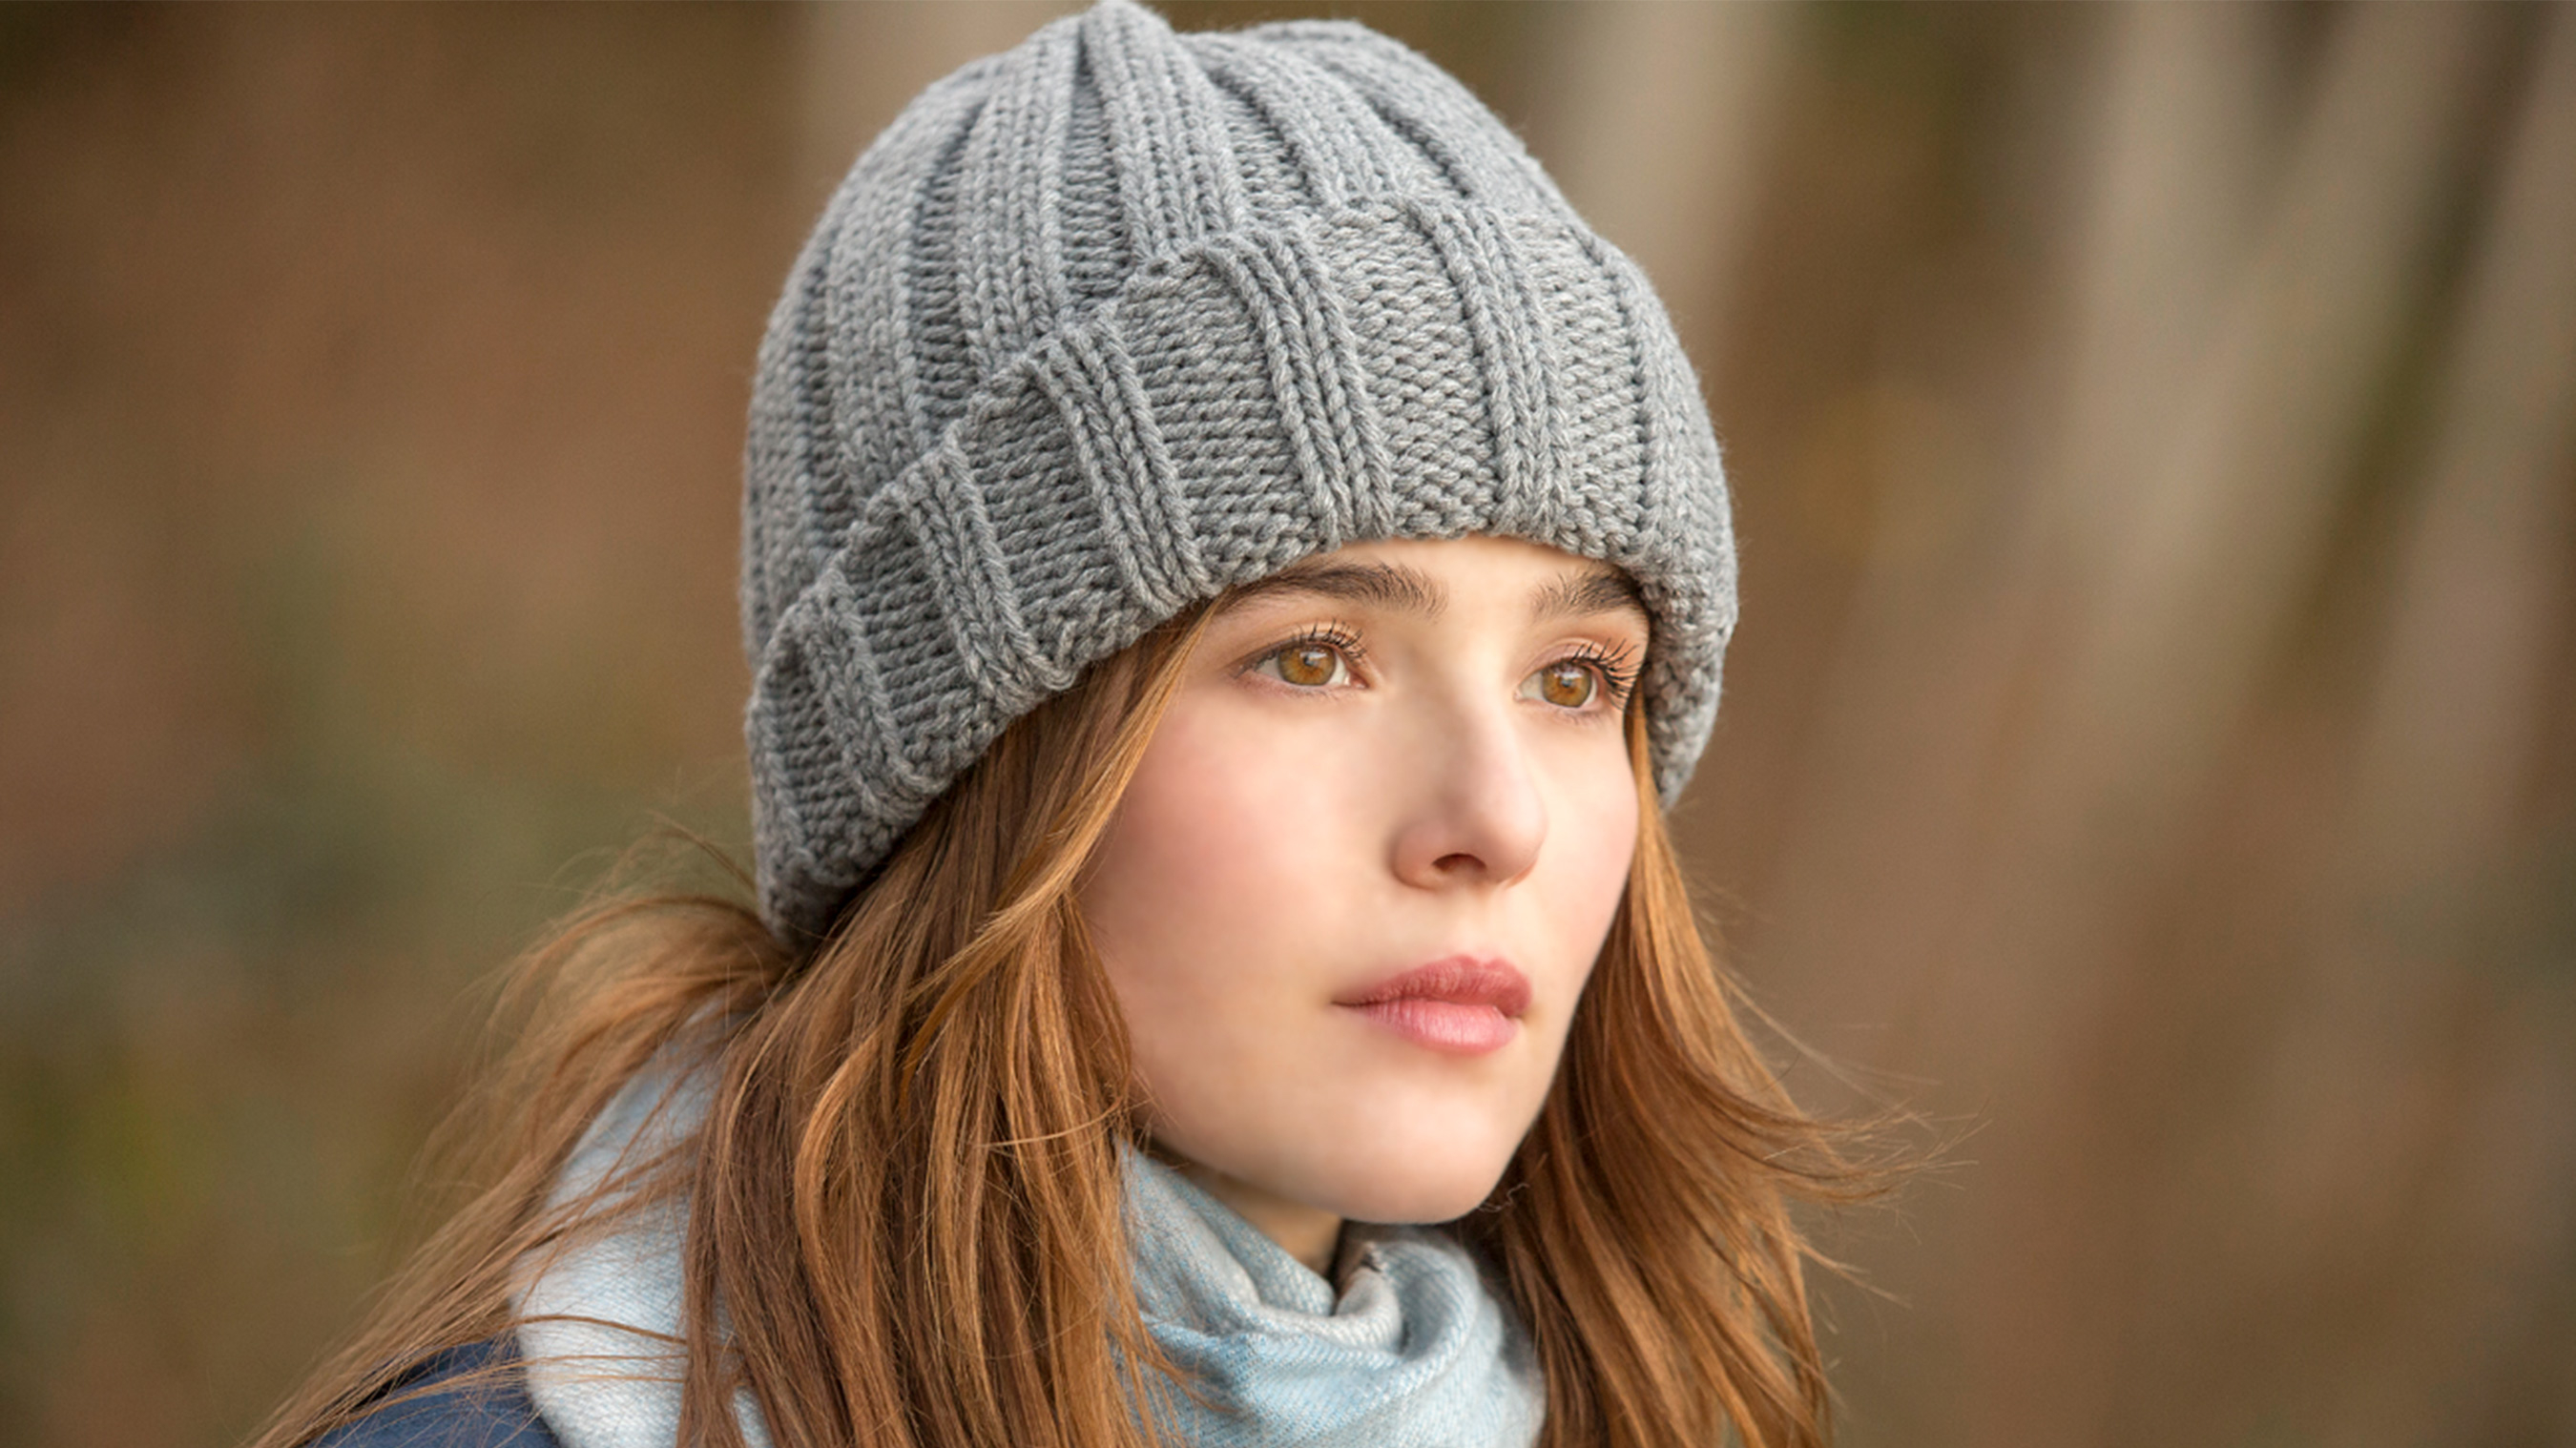 Before I Fall (Ry Russo-Young), USA, DCP, colour, sound, 98 minutes, Samantha Kingston (Zoey Deutch)